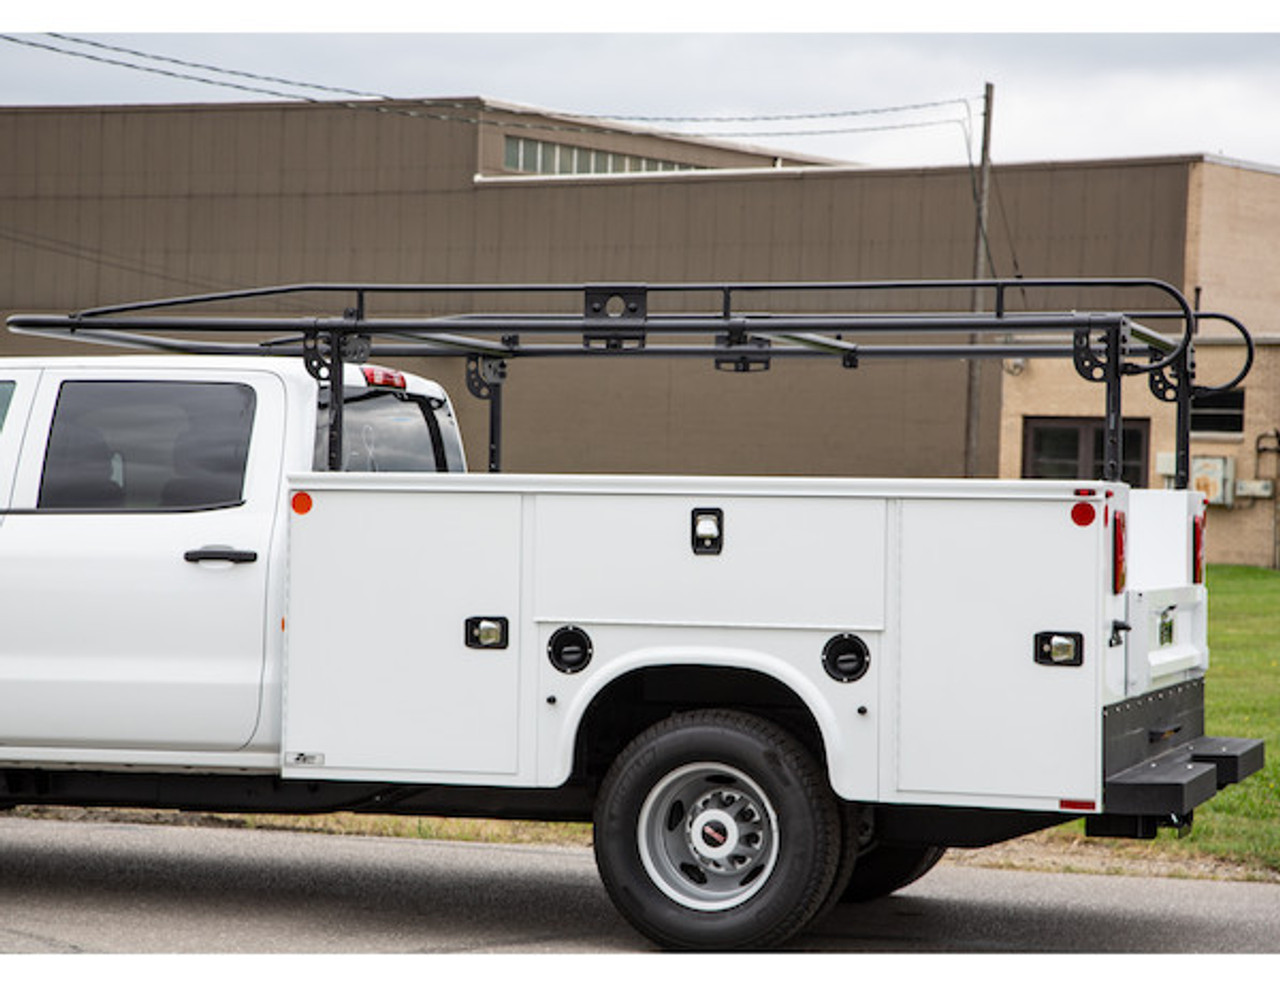 BUYERS 1501250 13-1/2 Foot Black Service Body Ladder Rack for Movers, Contractors, Construction, Painters Picture # 4